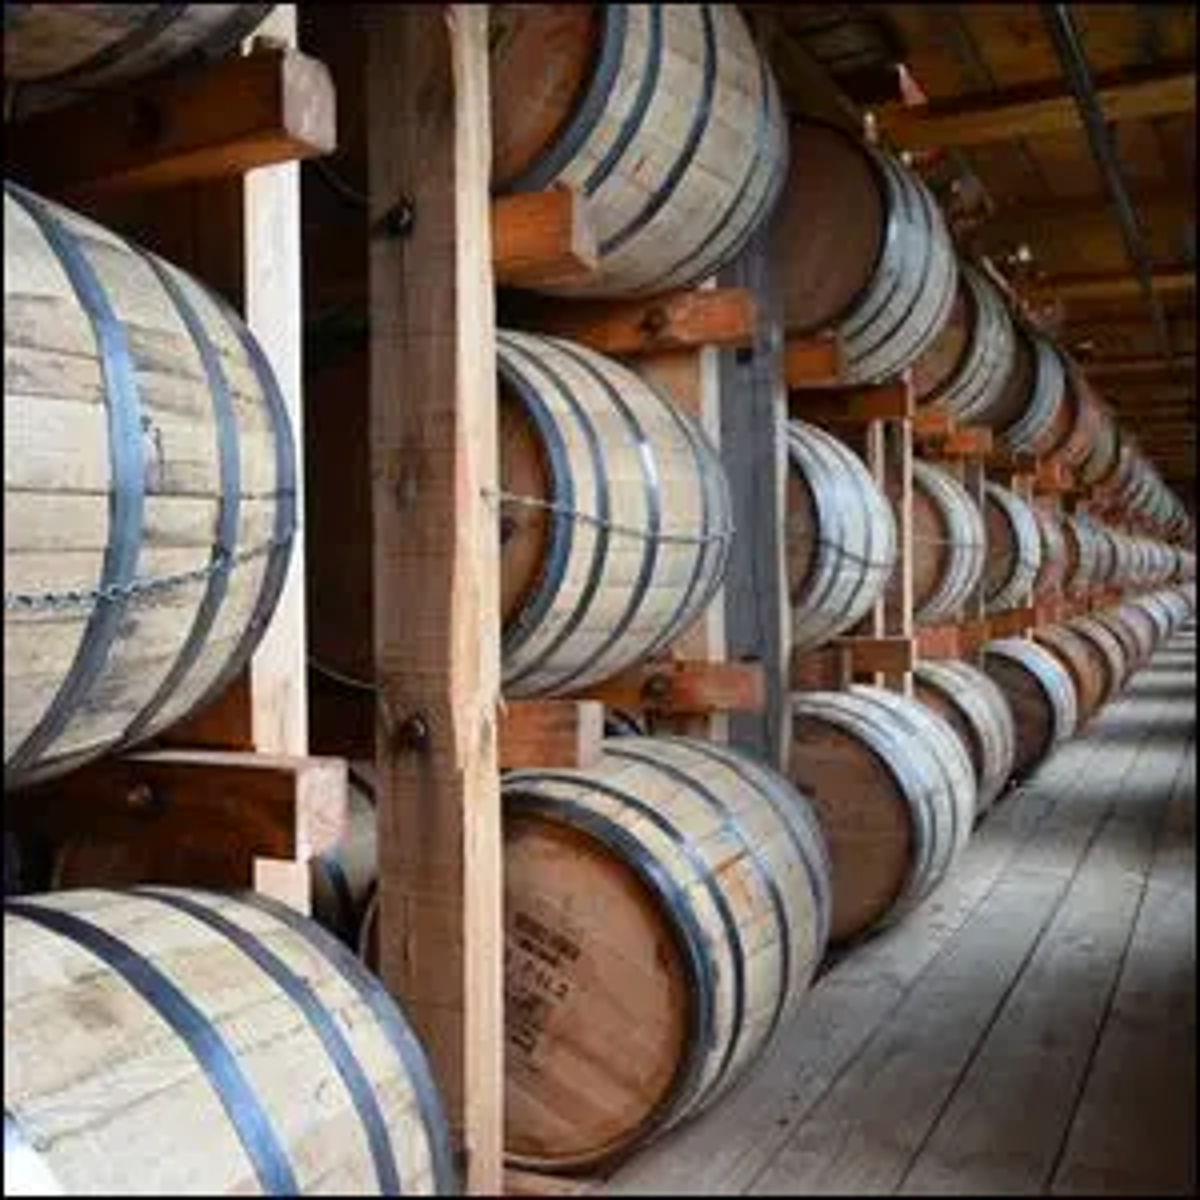 A rack house for maturing Jim Beam bourbon whiskey located in Clermont, Kentucky.